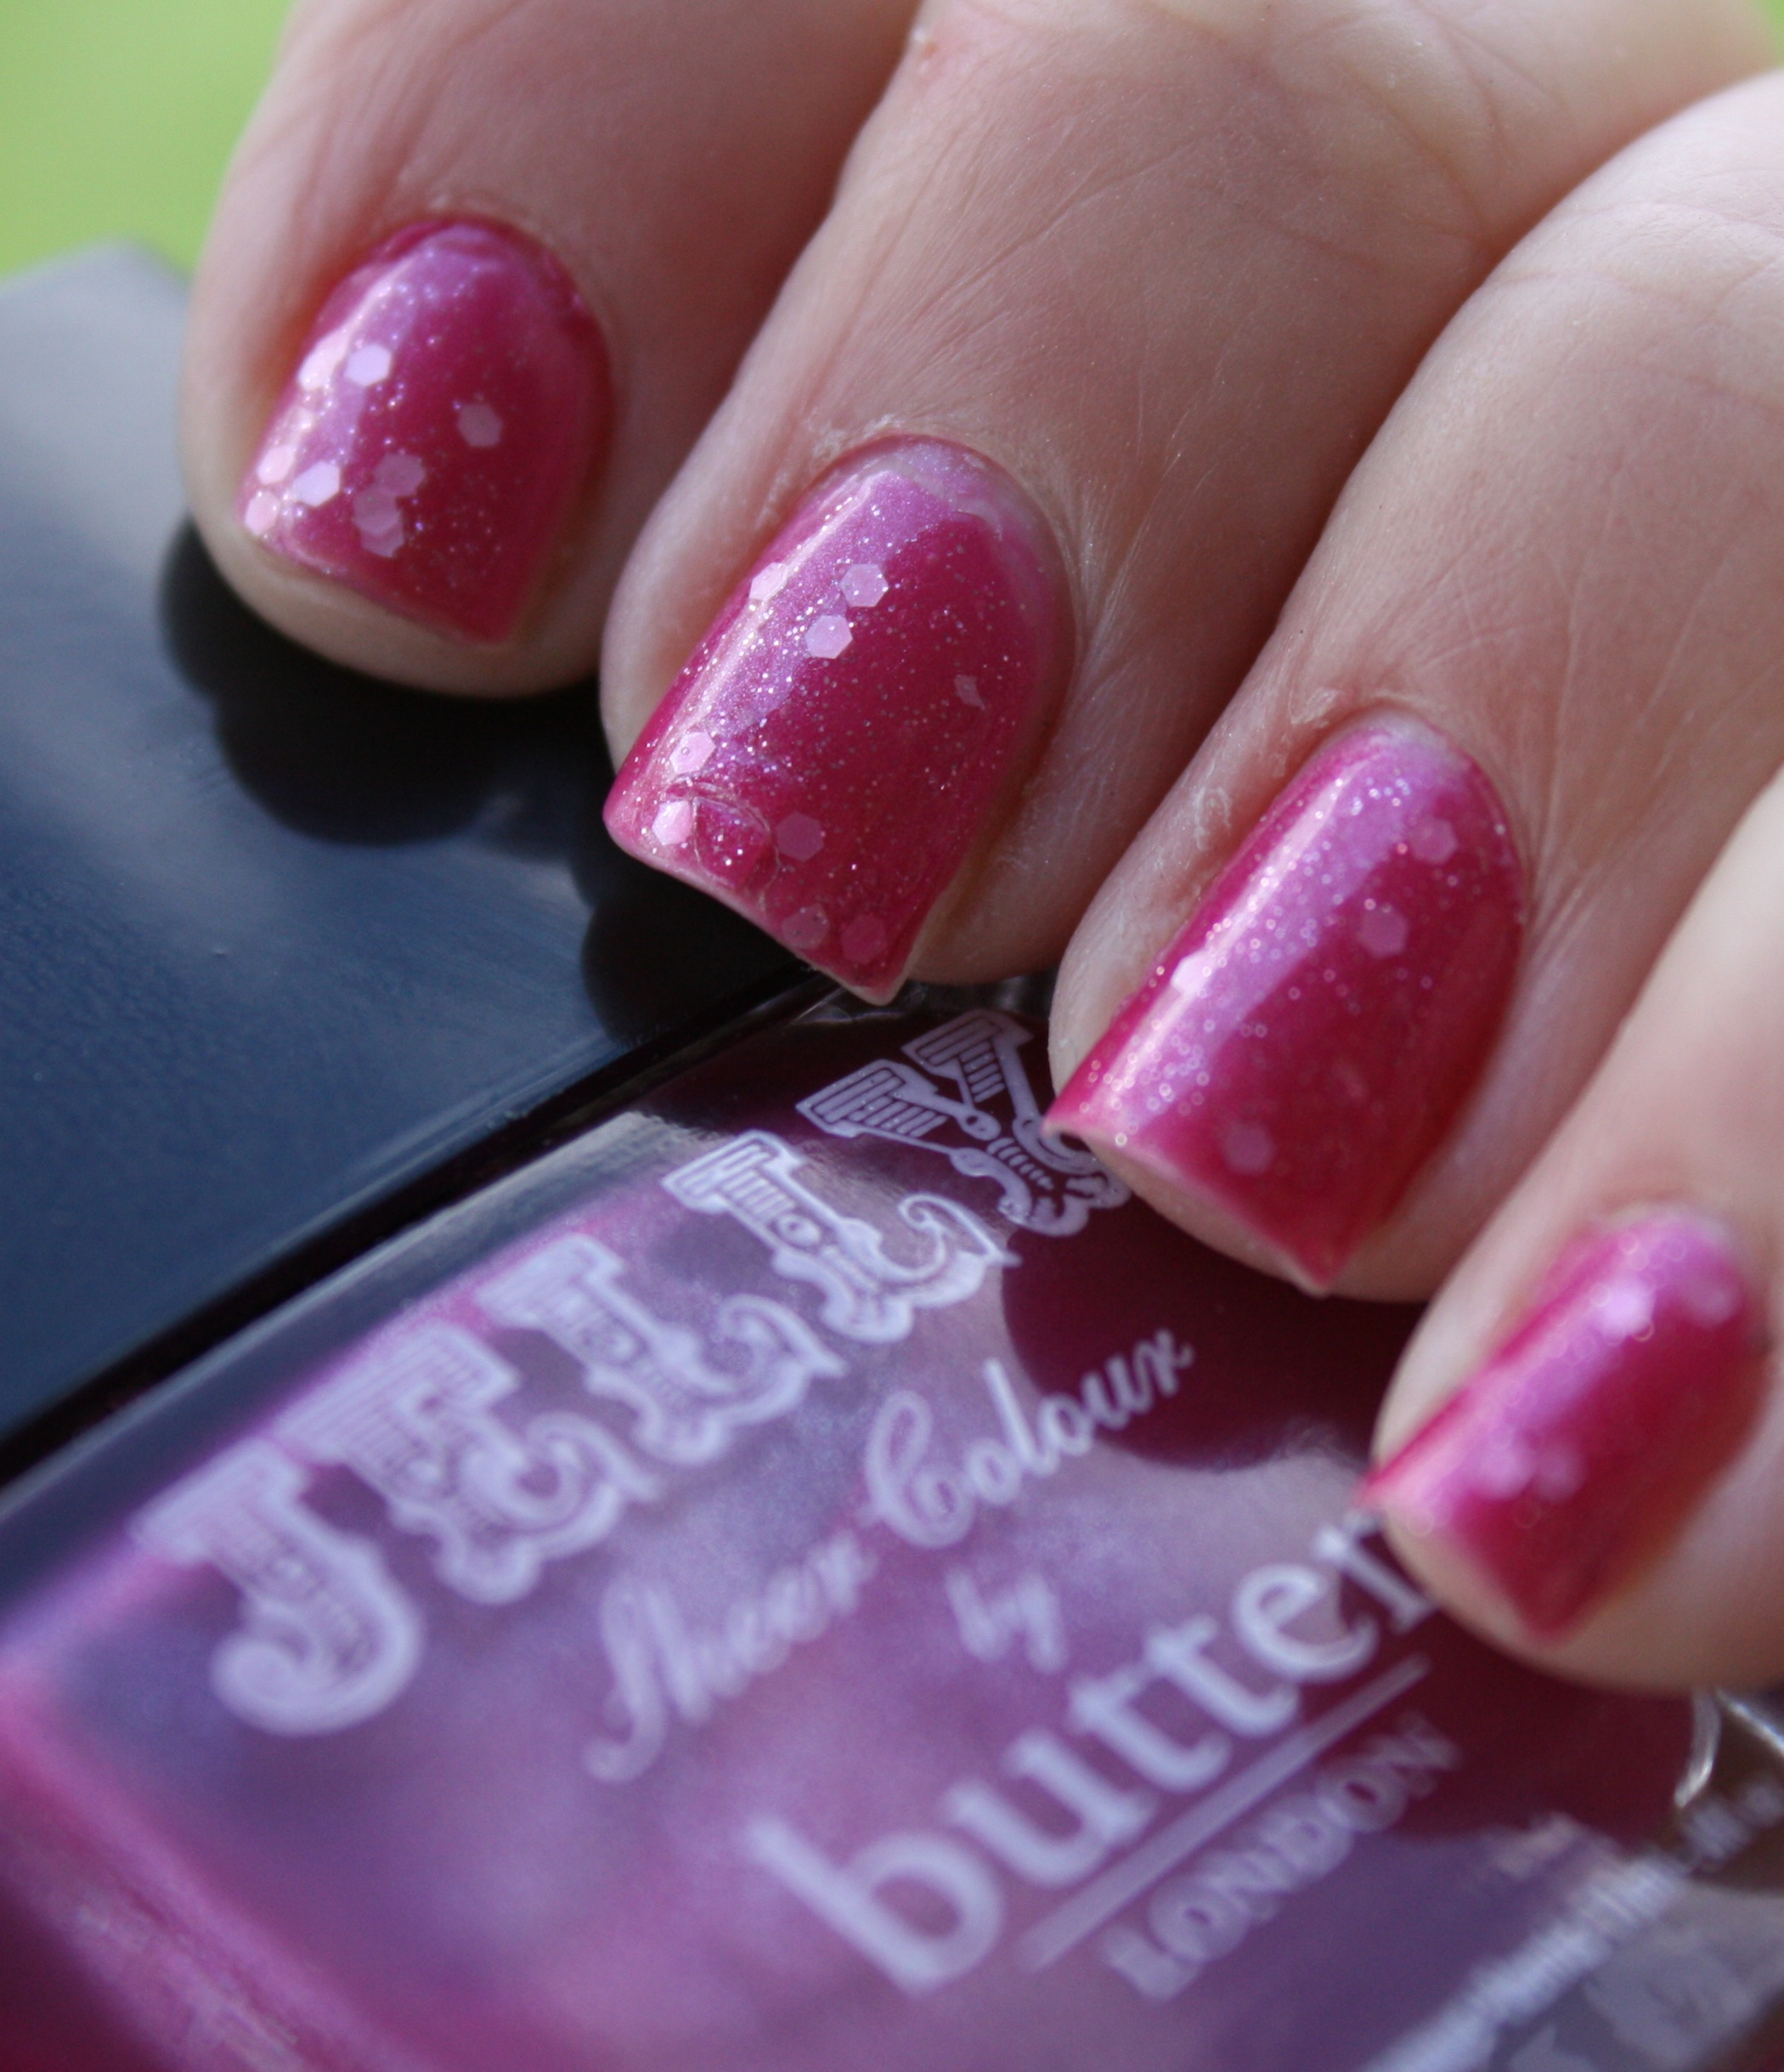 Jelly Sandwich With Butter London and OPI – horrendous color